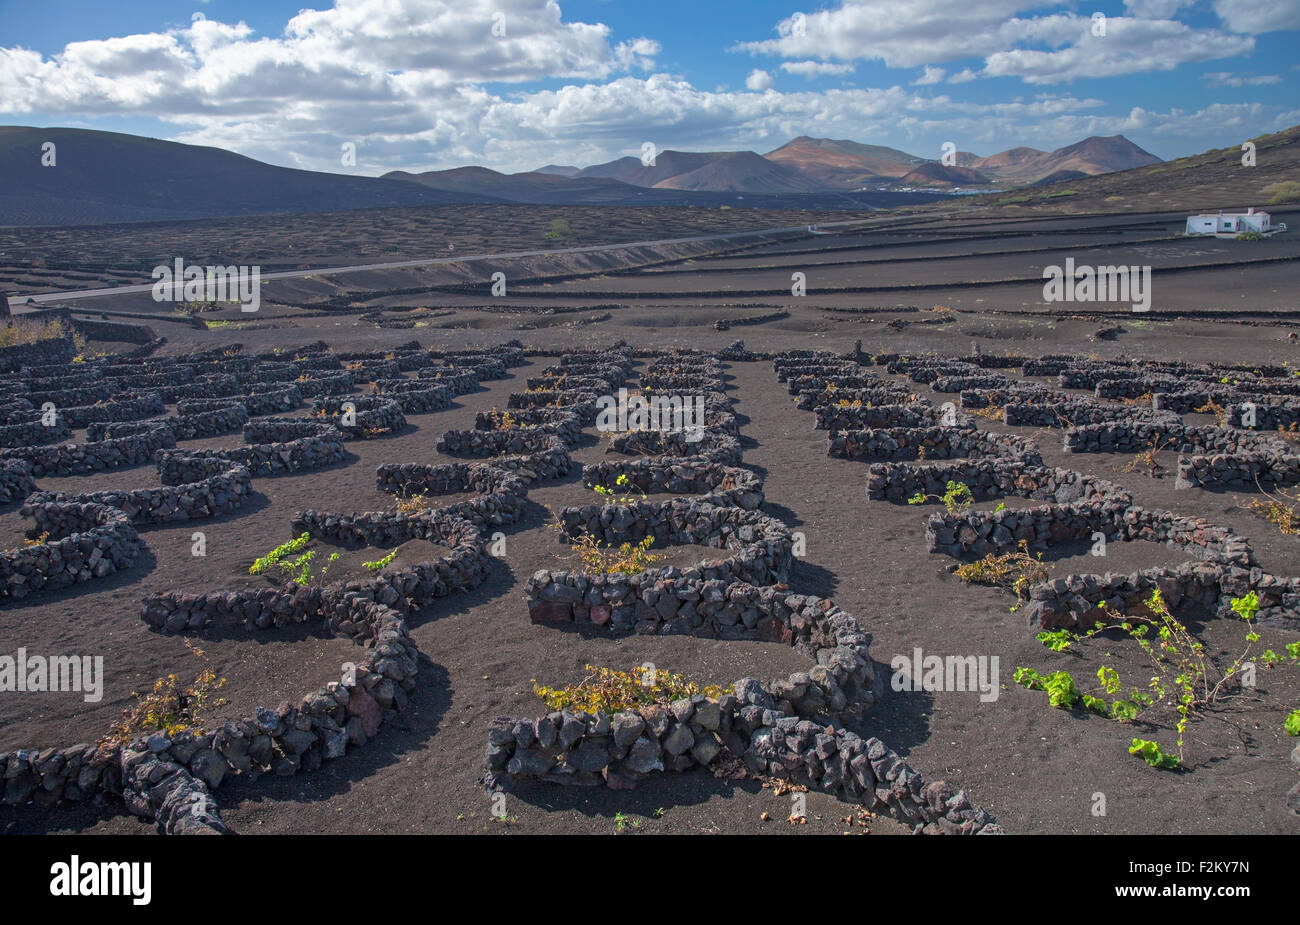 La Geria, Lanzarote, Canary Islands, vines are groung in volcanic ash compartments; dew capturing - Stock Image